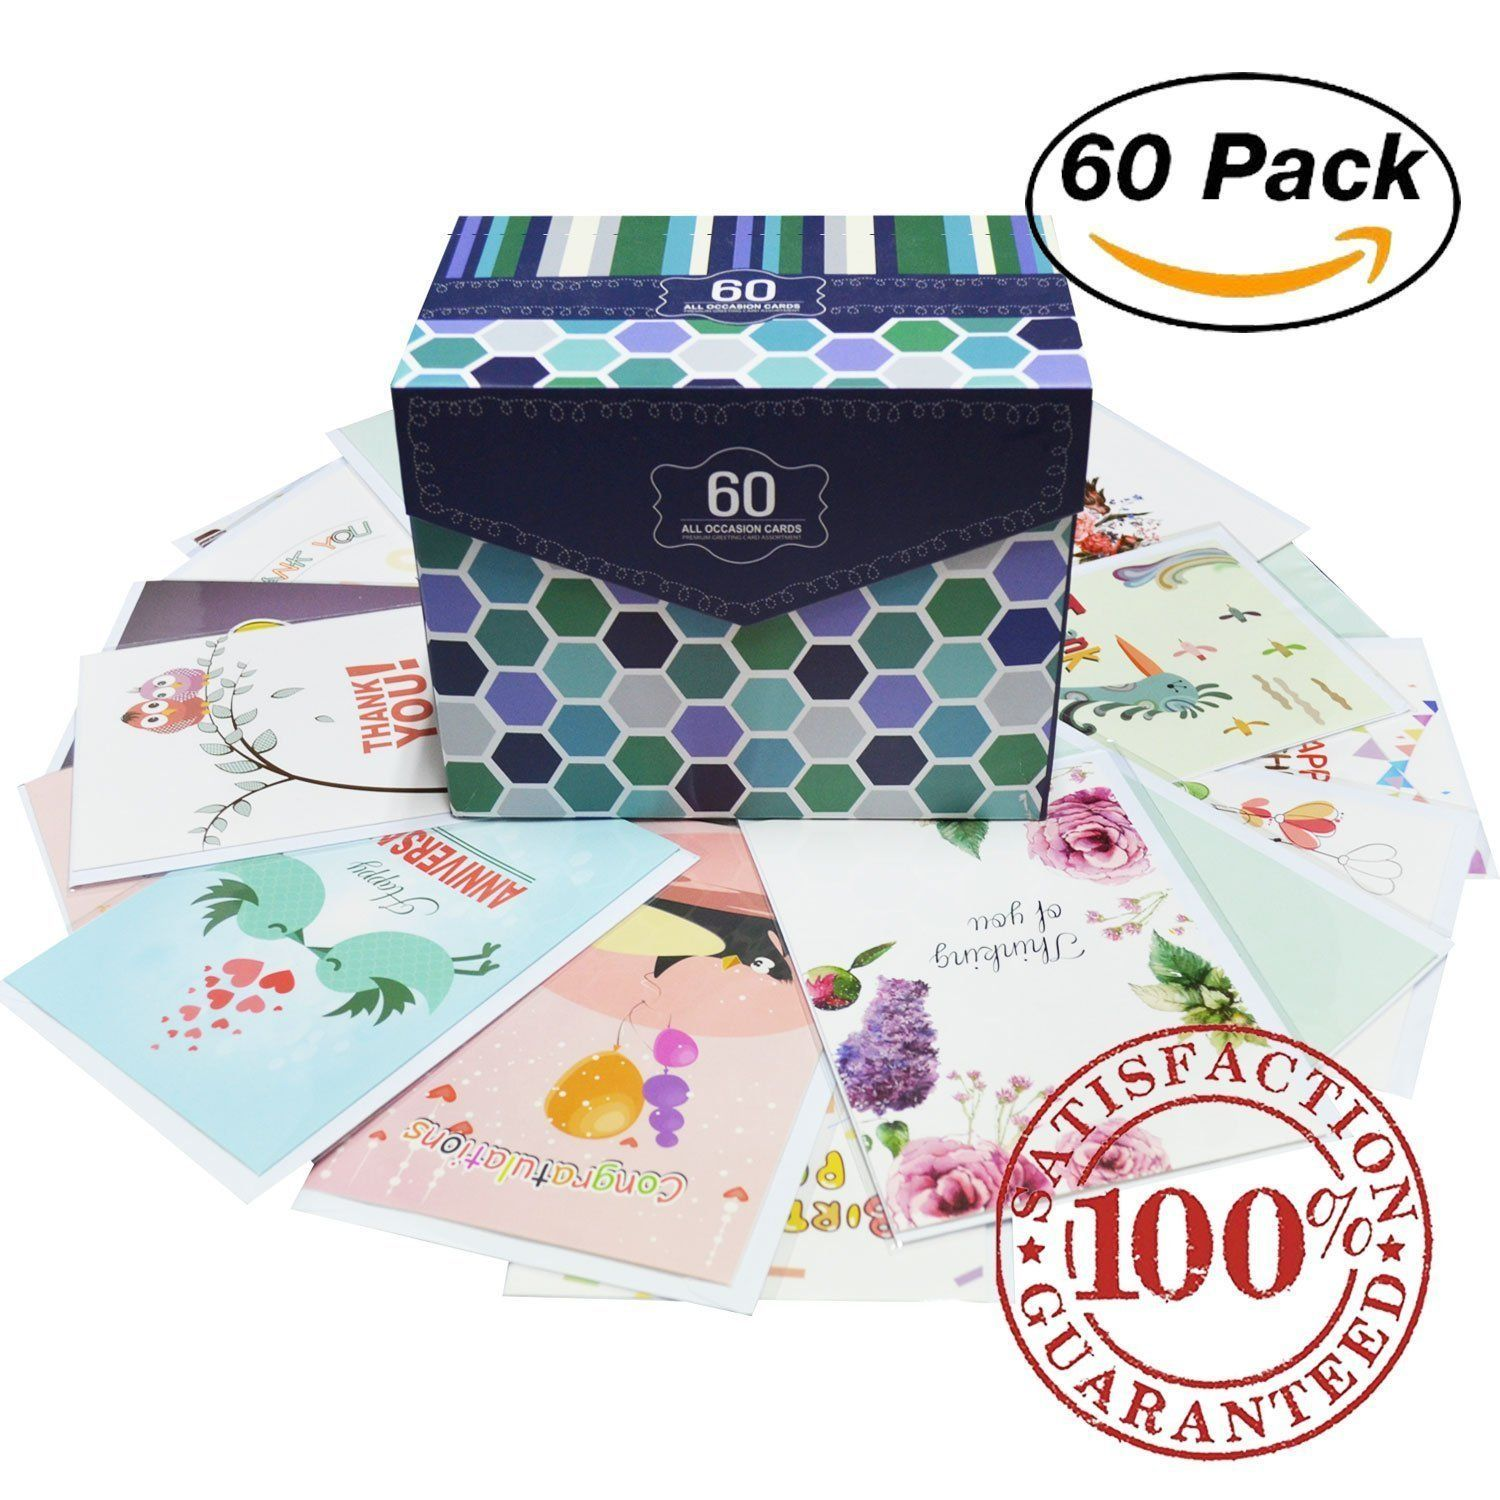 60 Pack Assorted All Occasion Greeting Cards